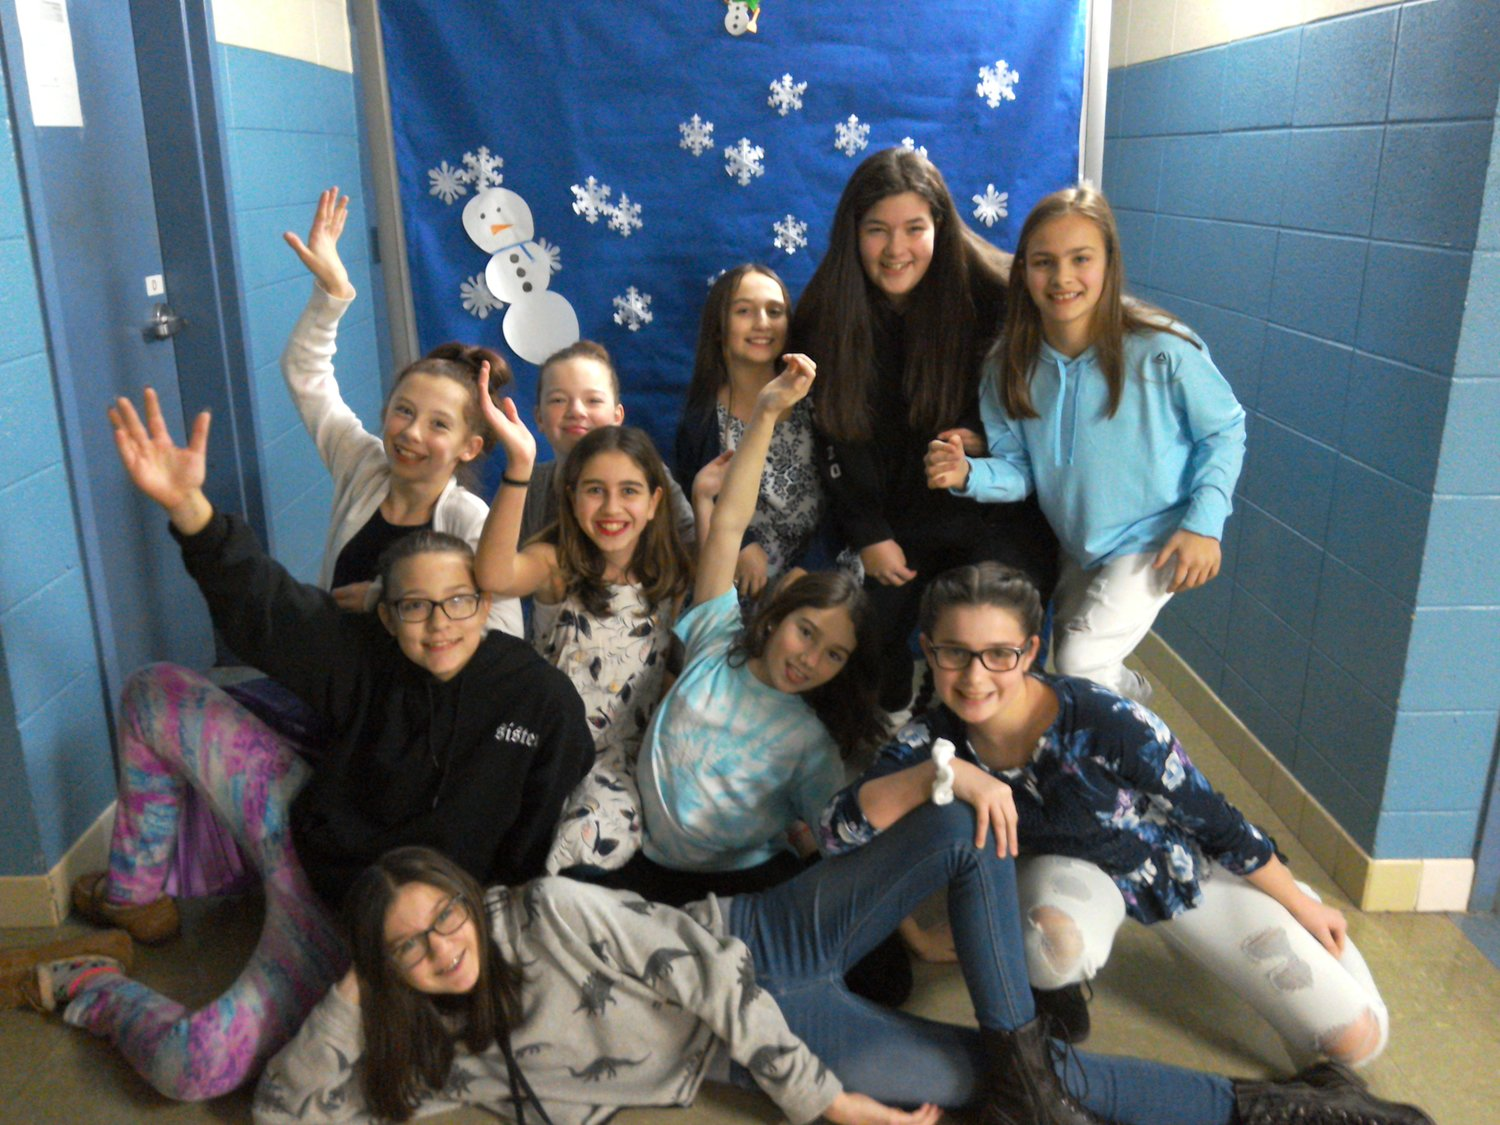 Students had fun with the Winter Wonderland dance photo booth